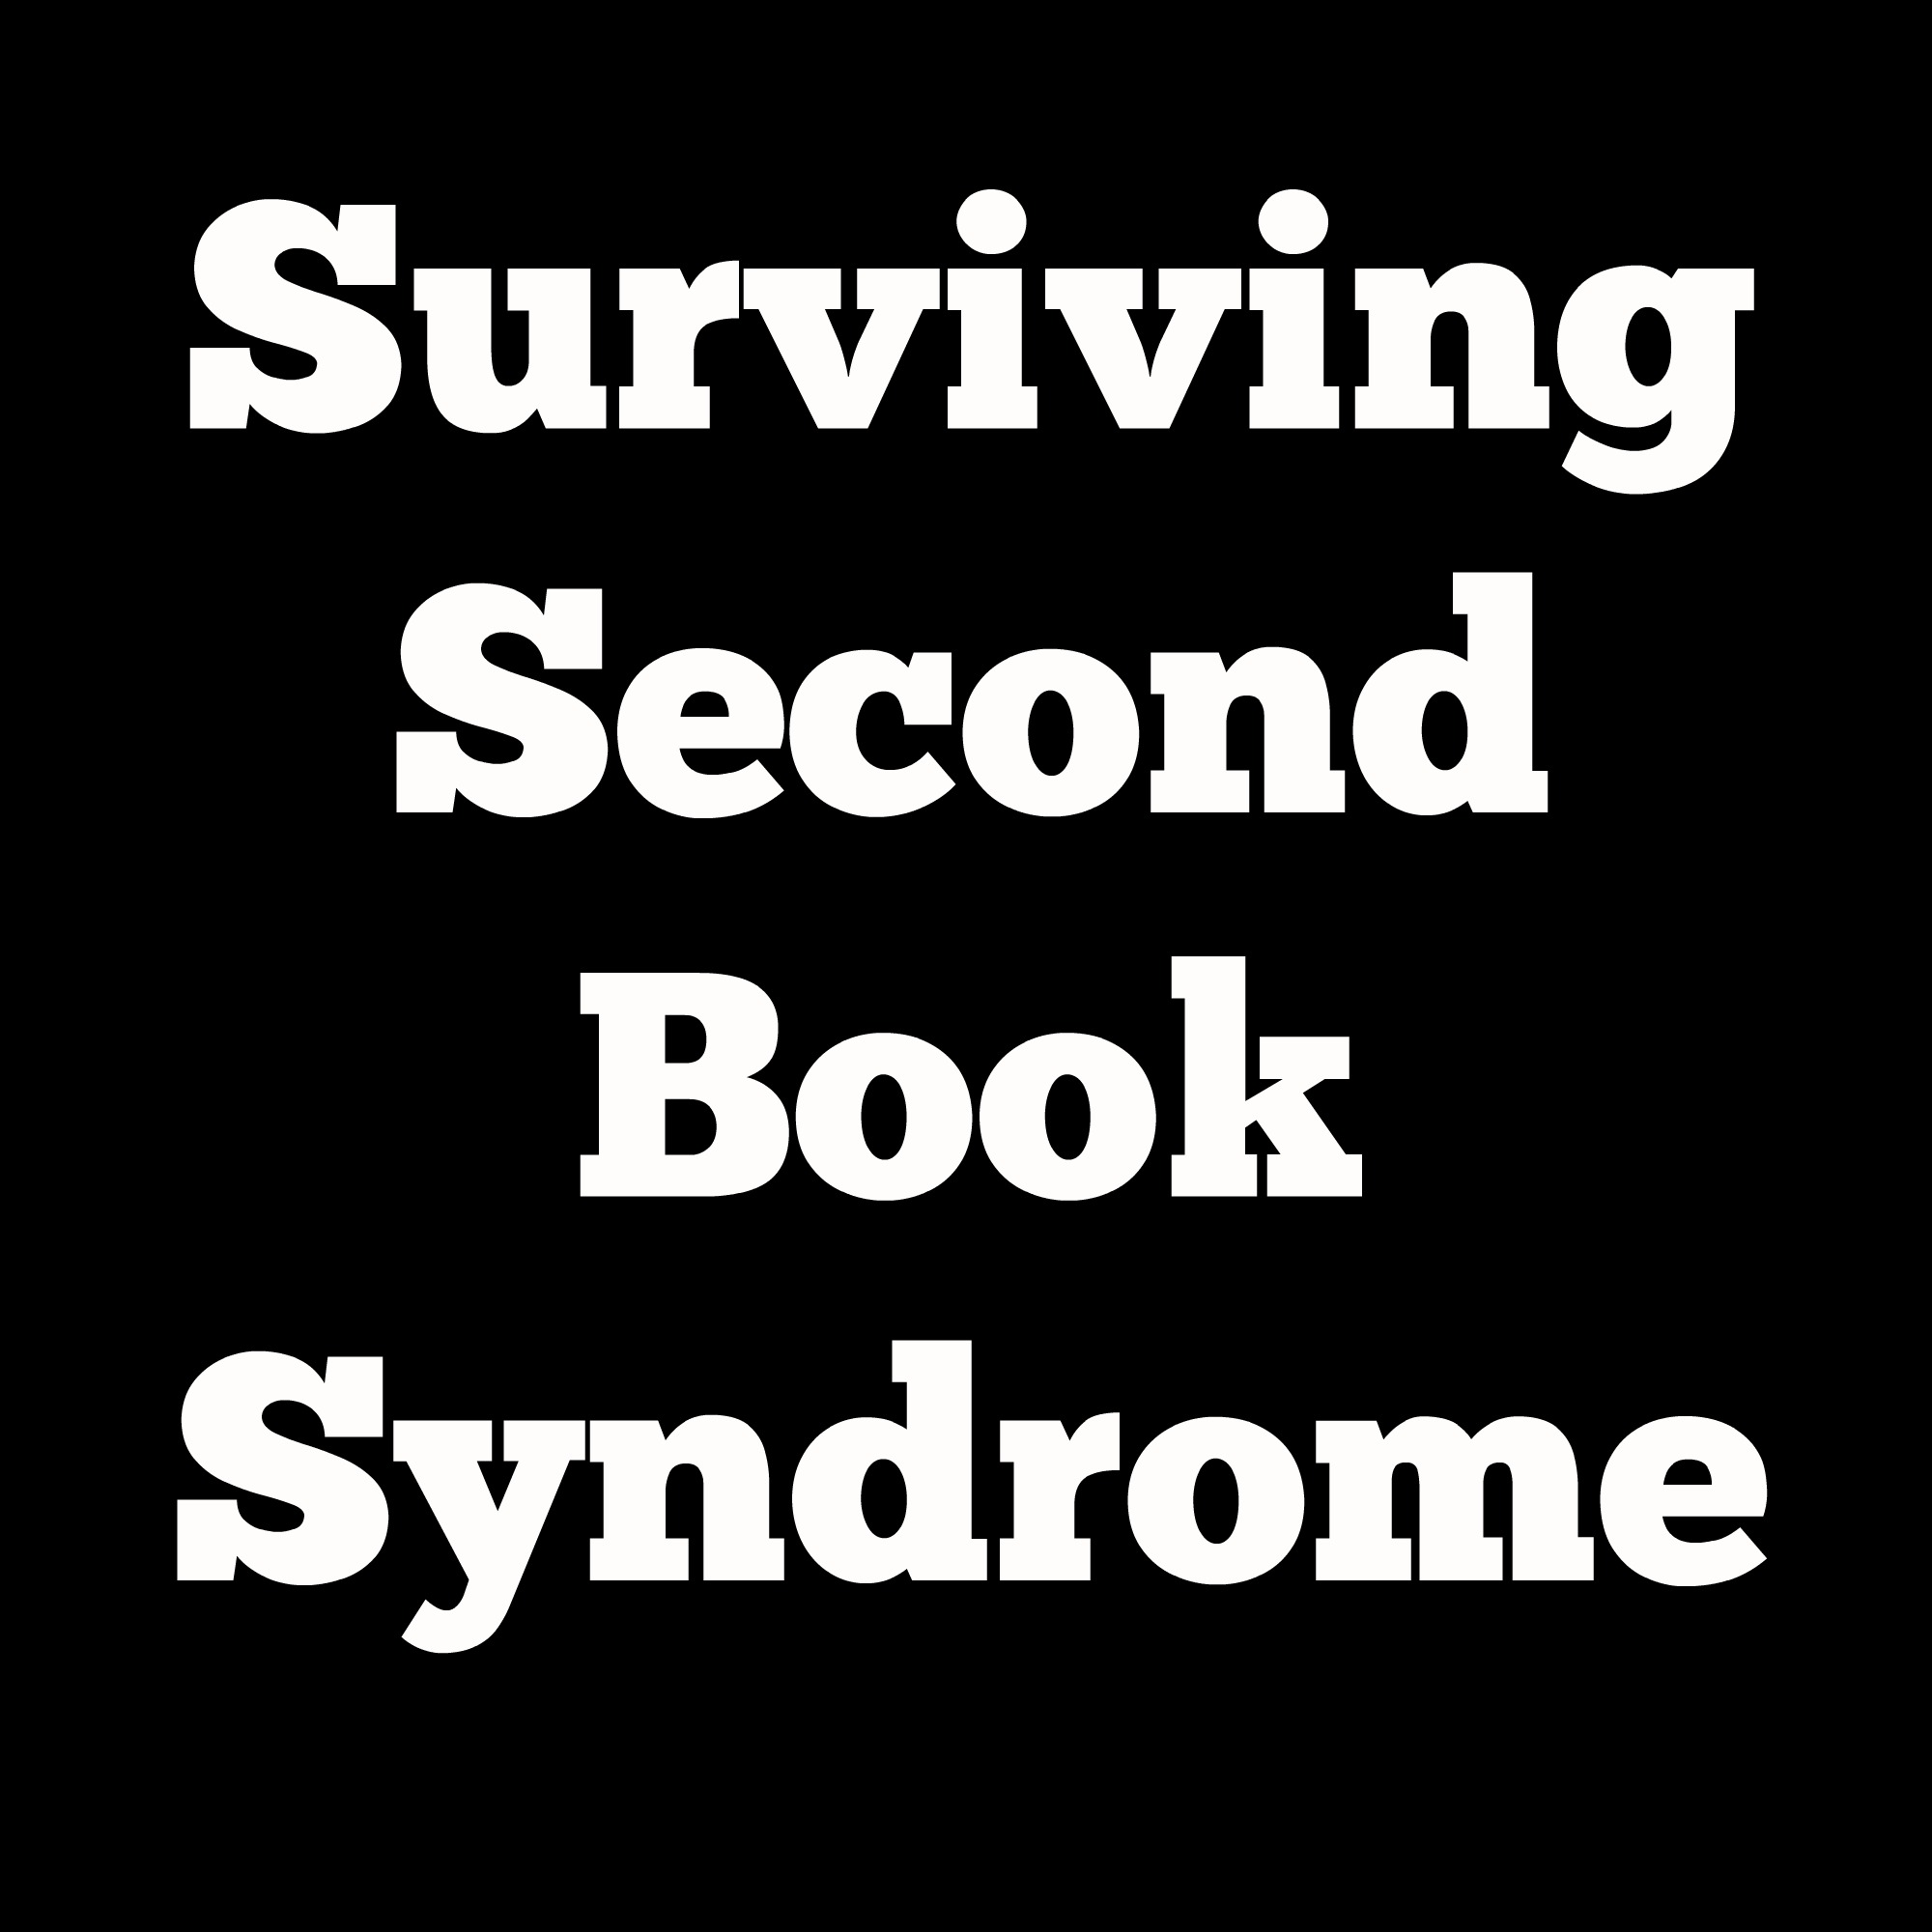 2nd-book-syndrome